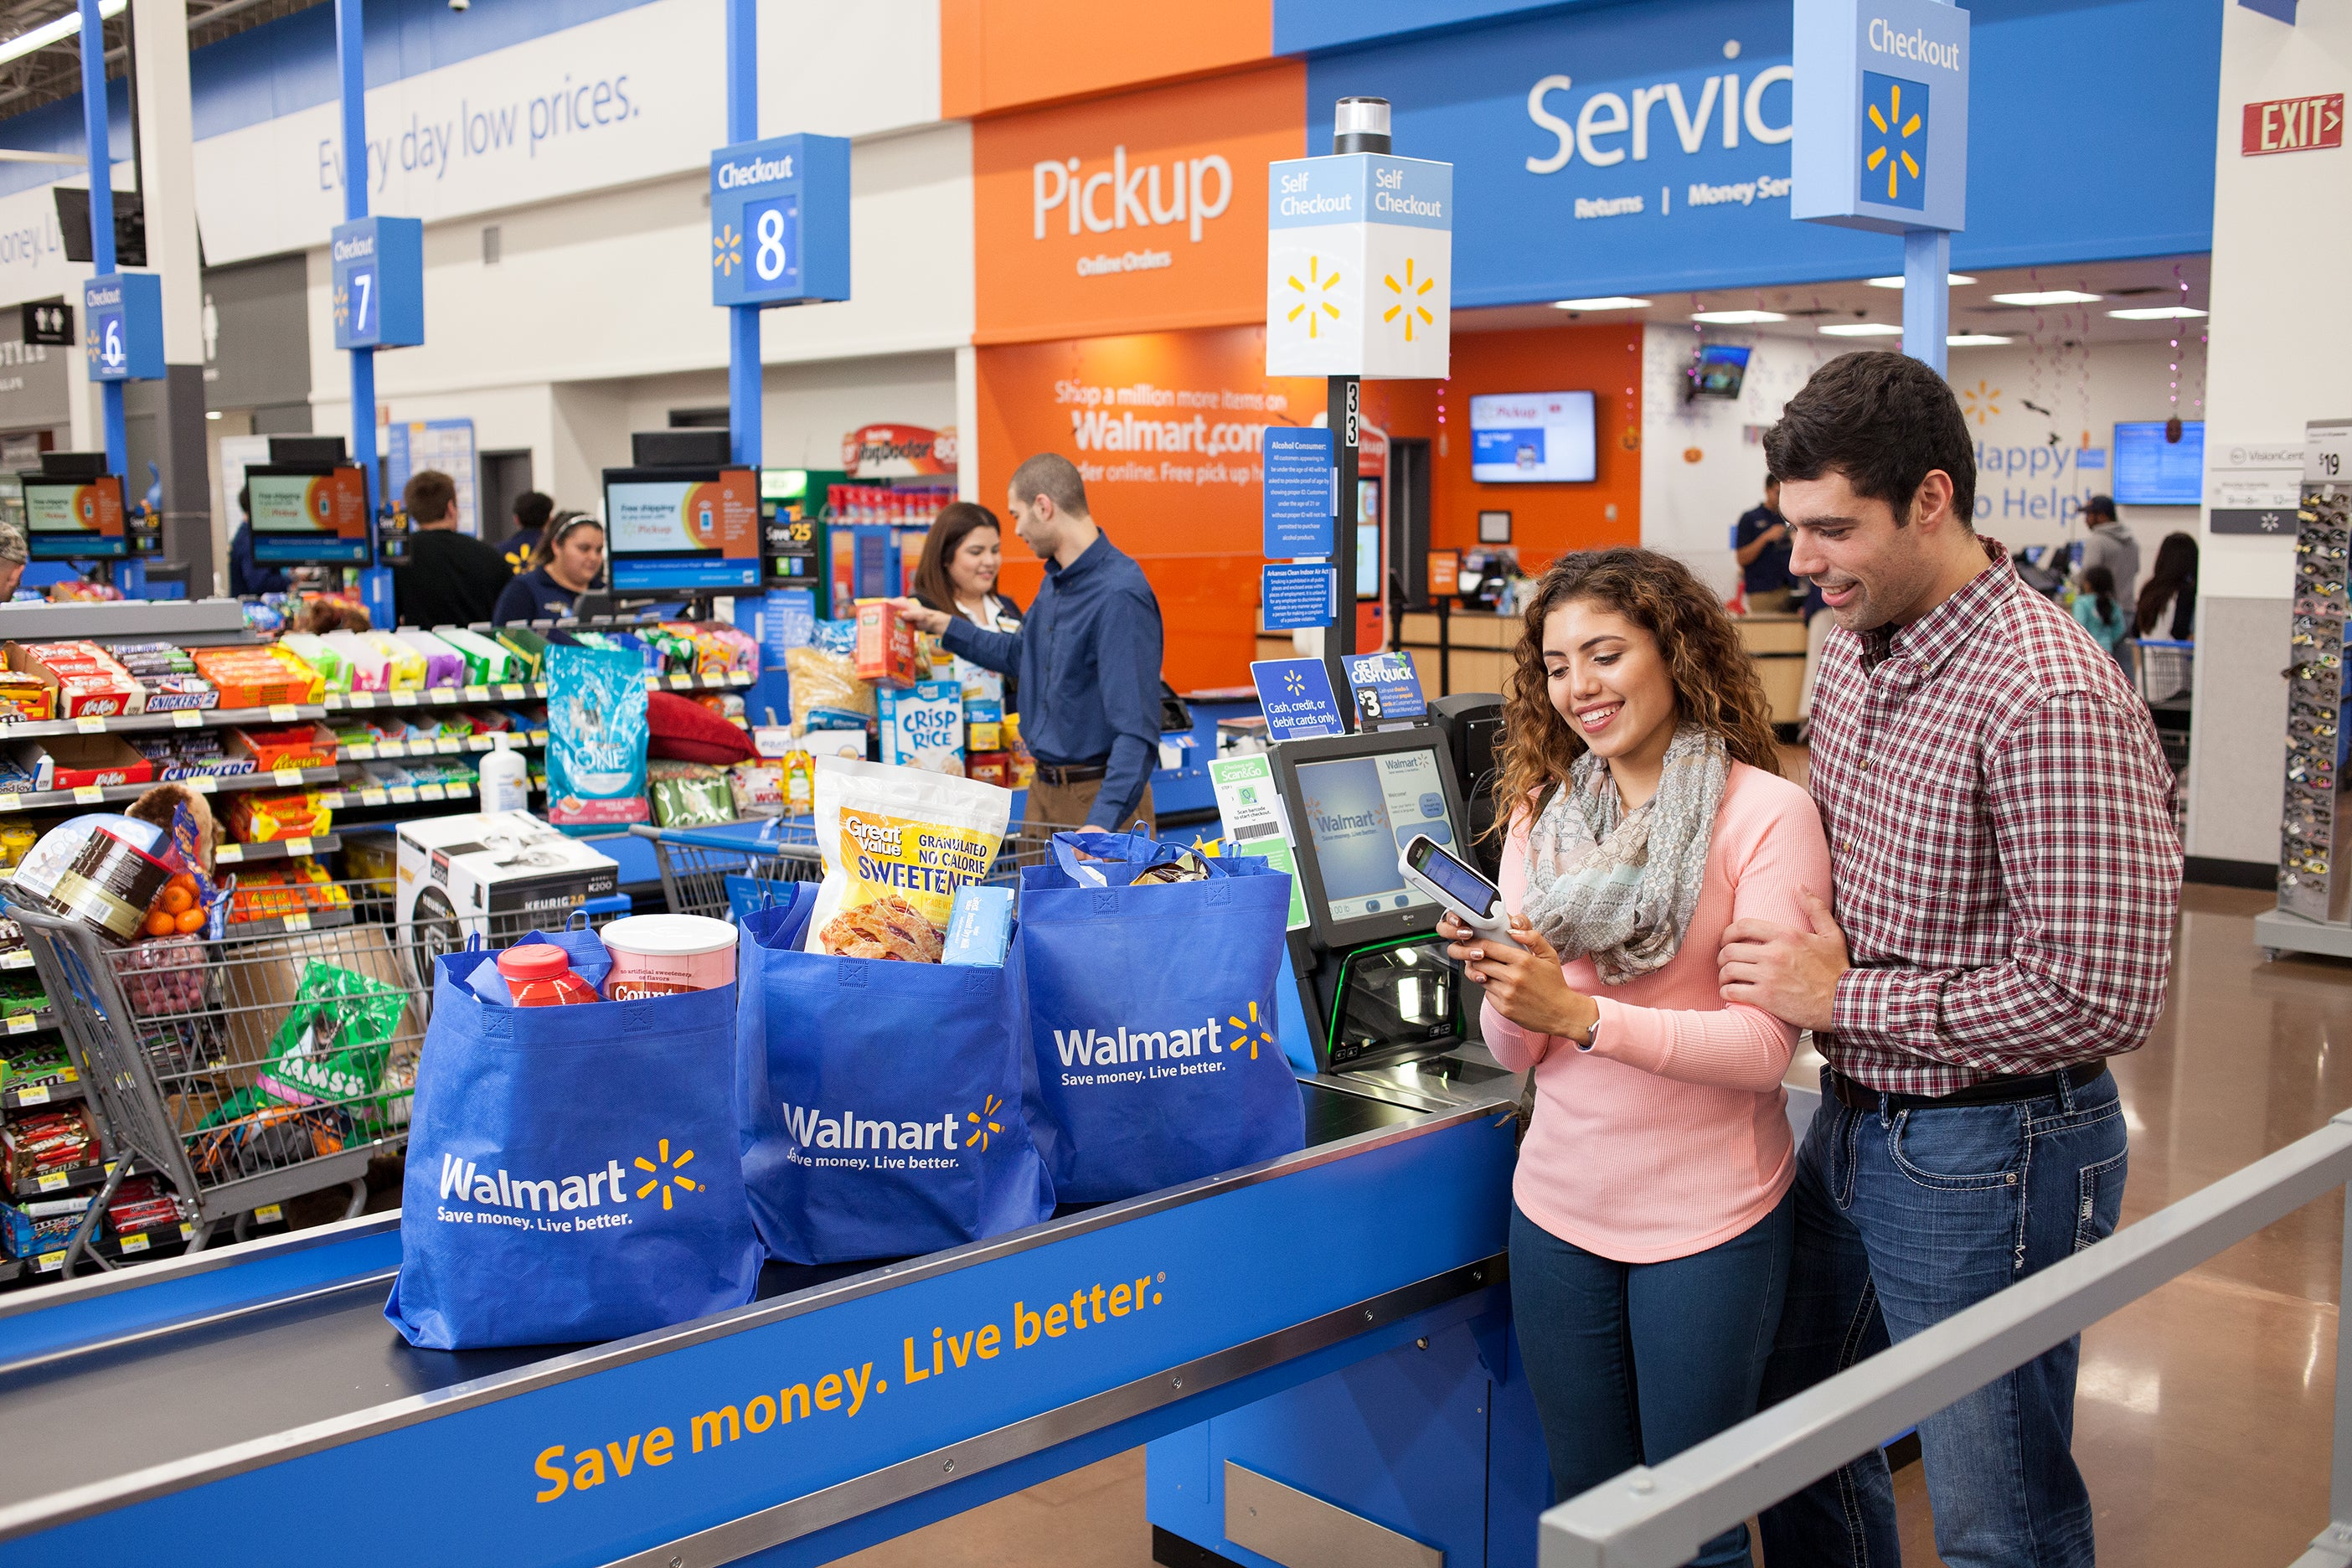 compare walmart com with amazon com what features do the sites have in Visit walmartcom, targetcom, marksandspencercom, and searscom identify the common features of their online marketing and at least one unique feature evident at each site do these sites have to distinguish themselves primarily in terms of price, product selection, or web site features.